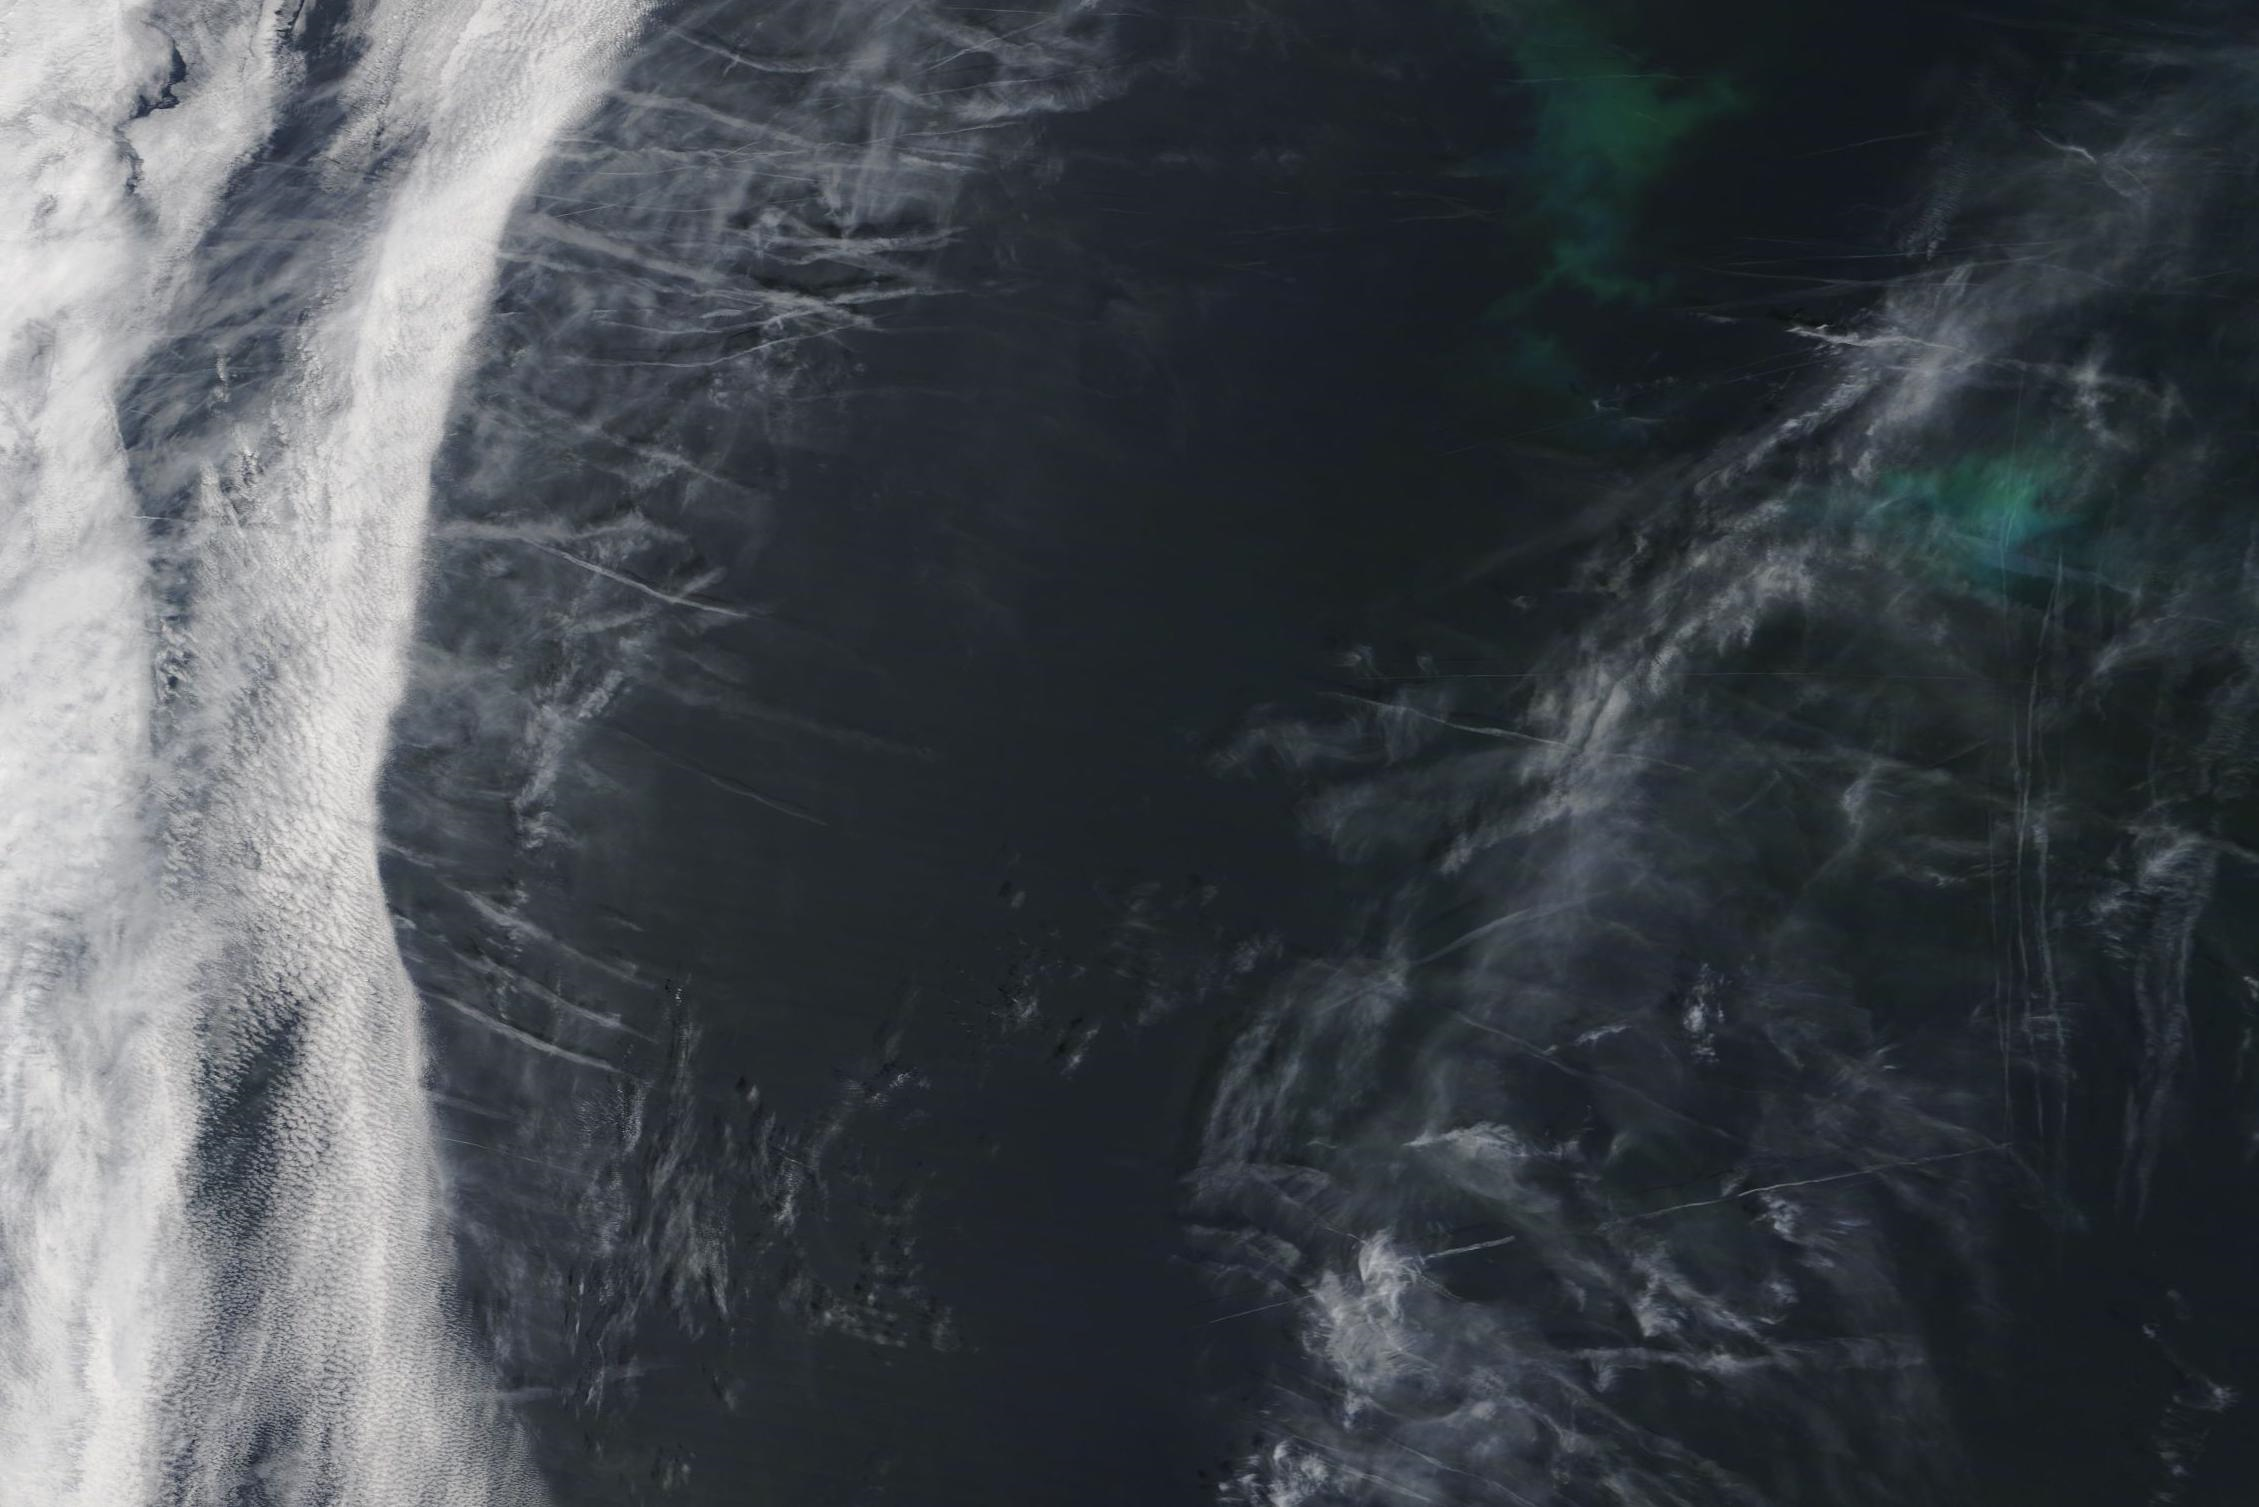 chemtrail geoengineering Shannon, Finisterre, Sole, May 13 2019 ...https://go.nasa.gov/2E5LPoa